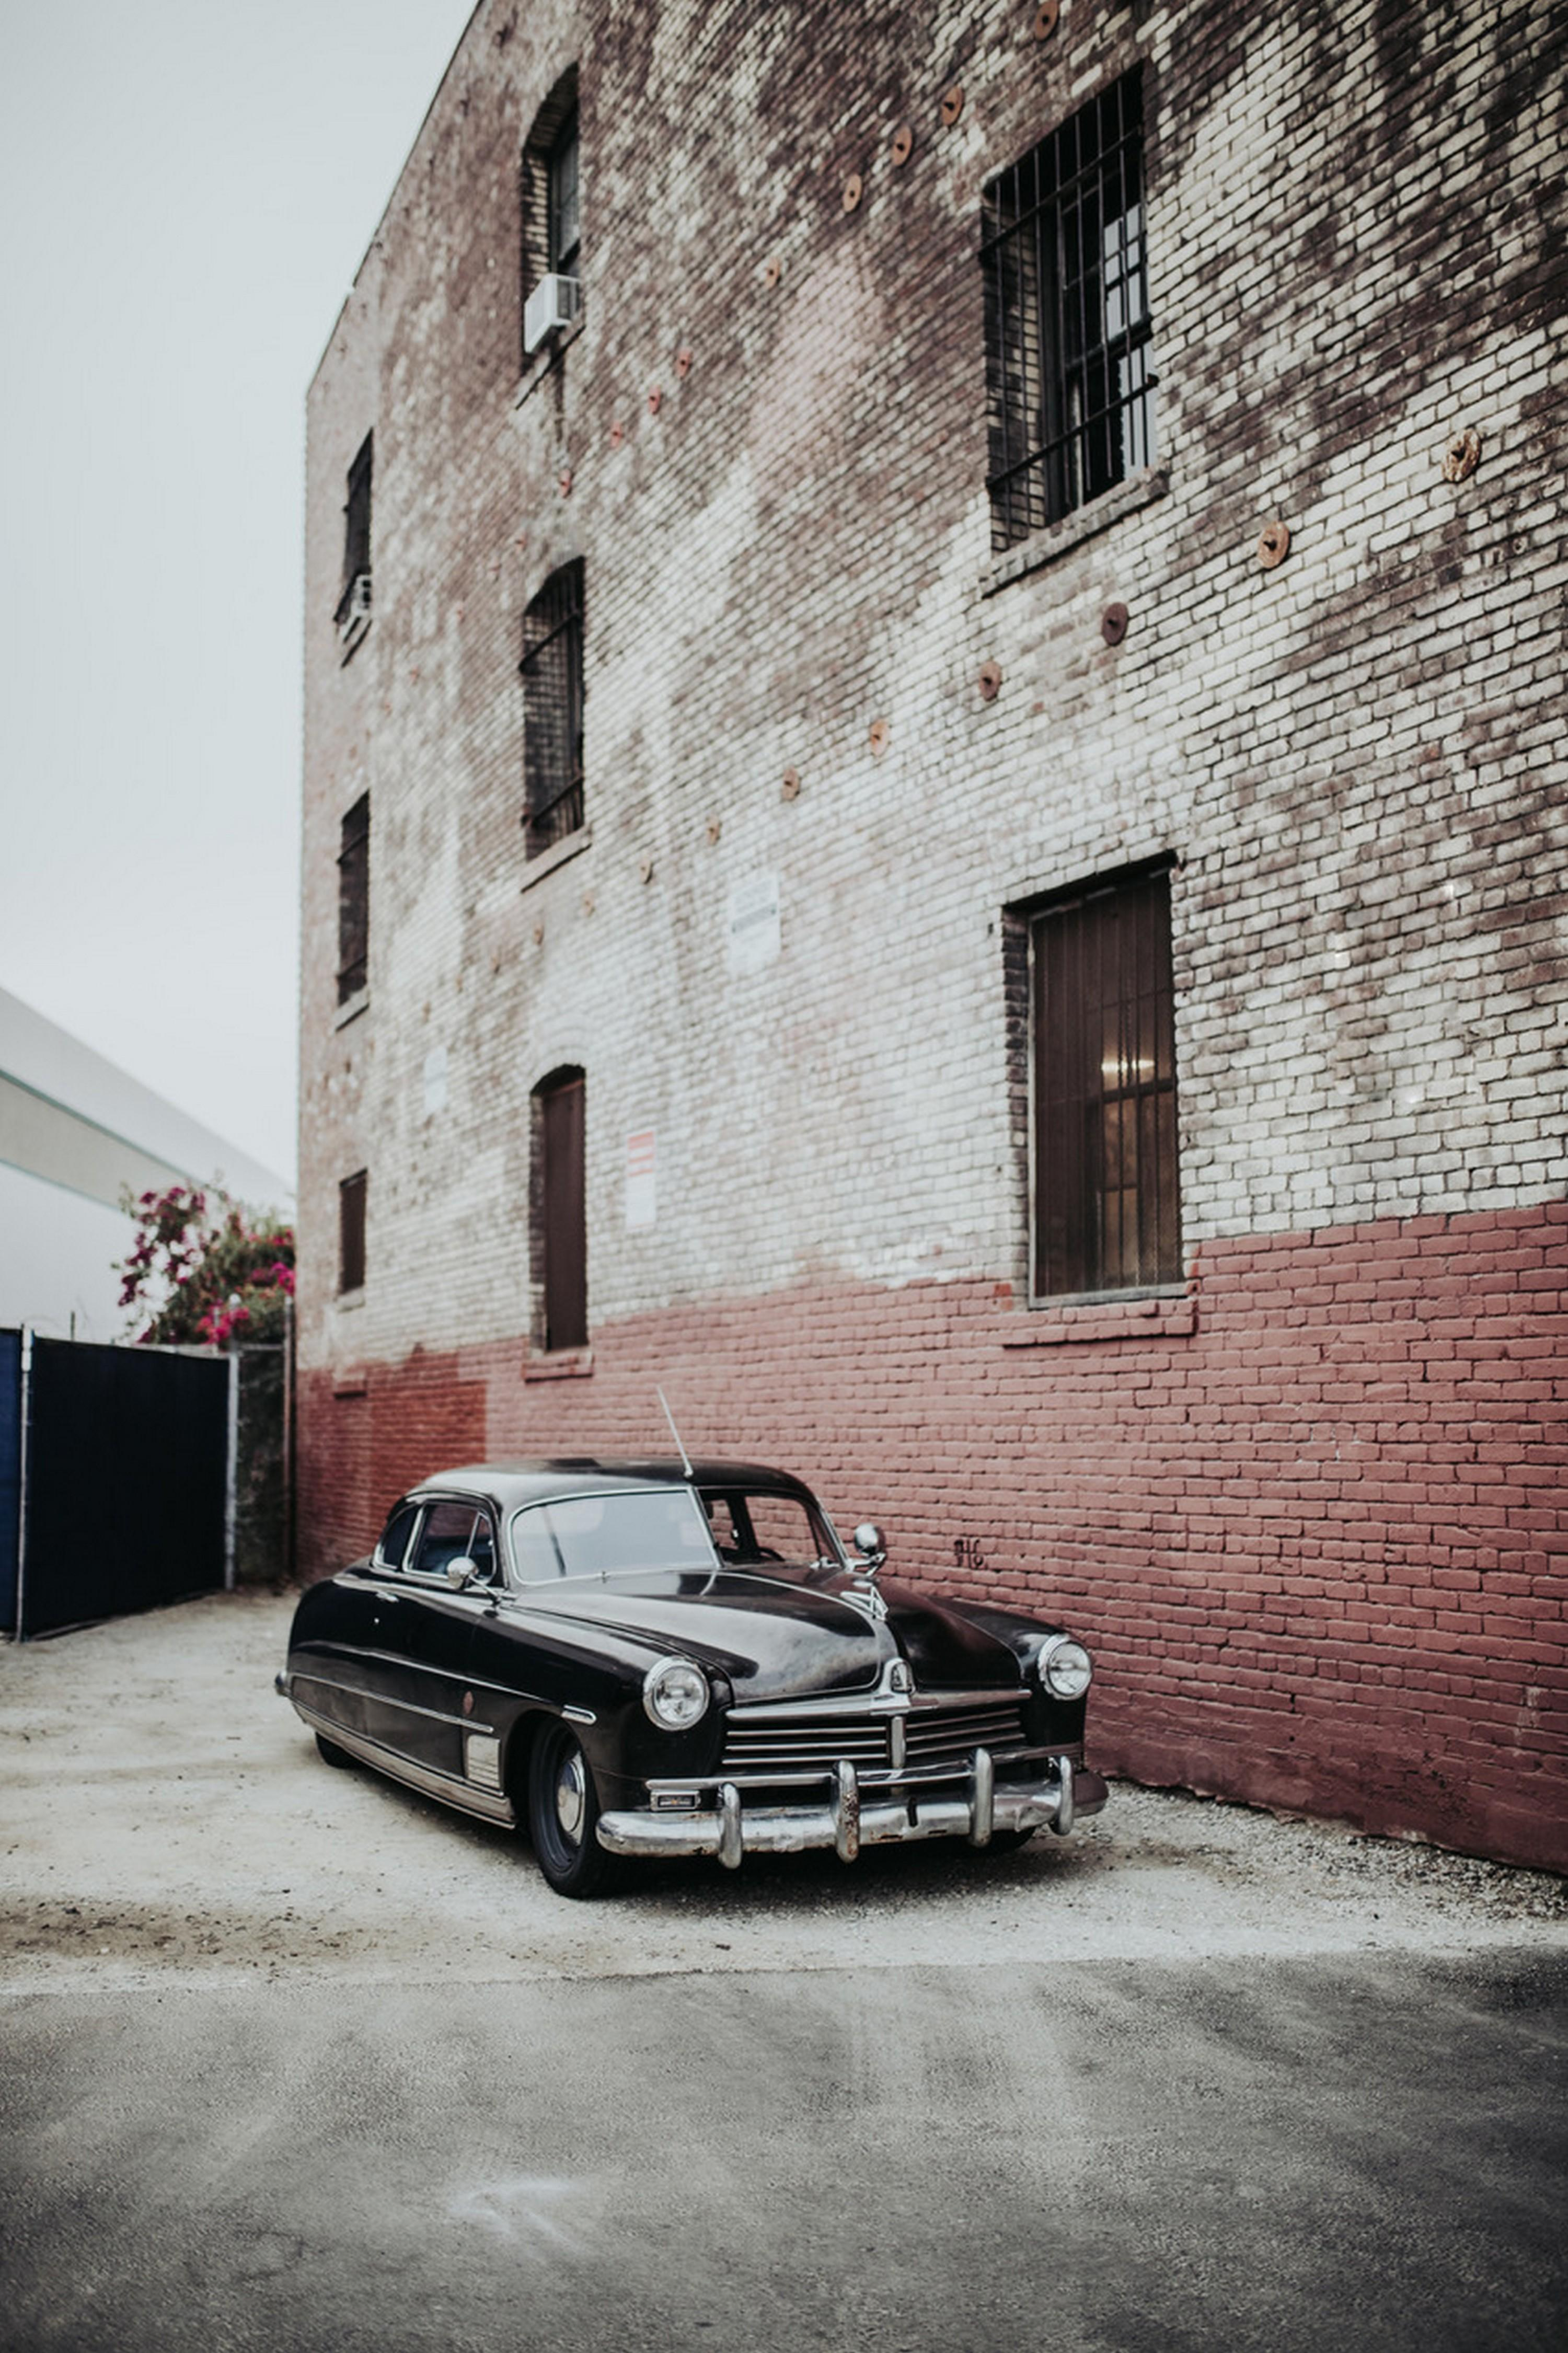 icon-hudson-derelict-f34-parked-brick-wall-tall-format-img-0792